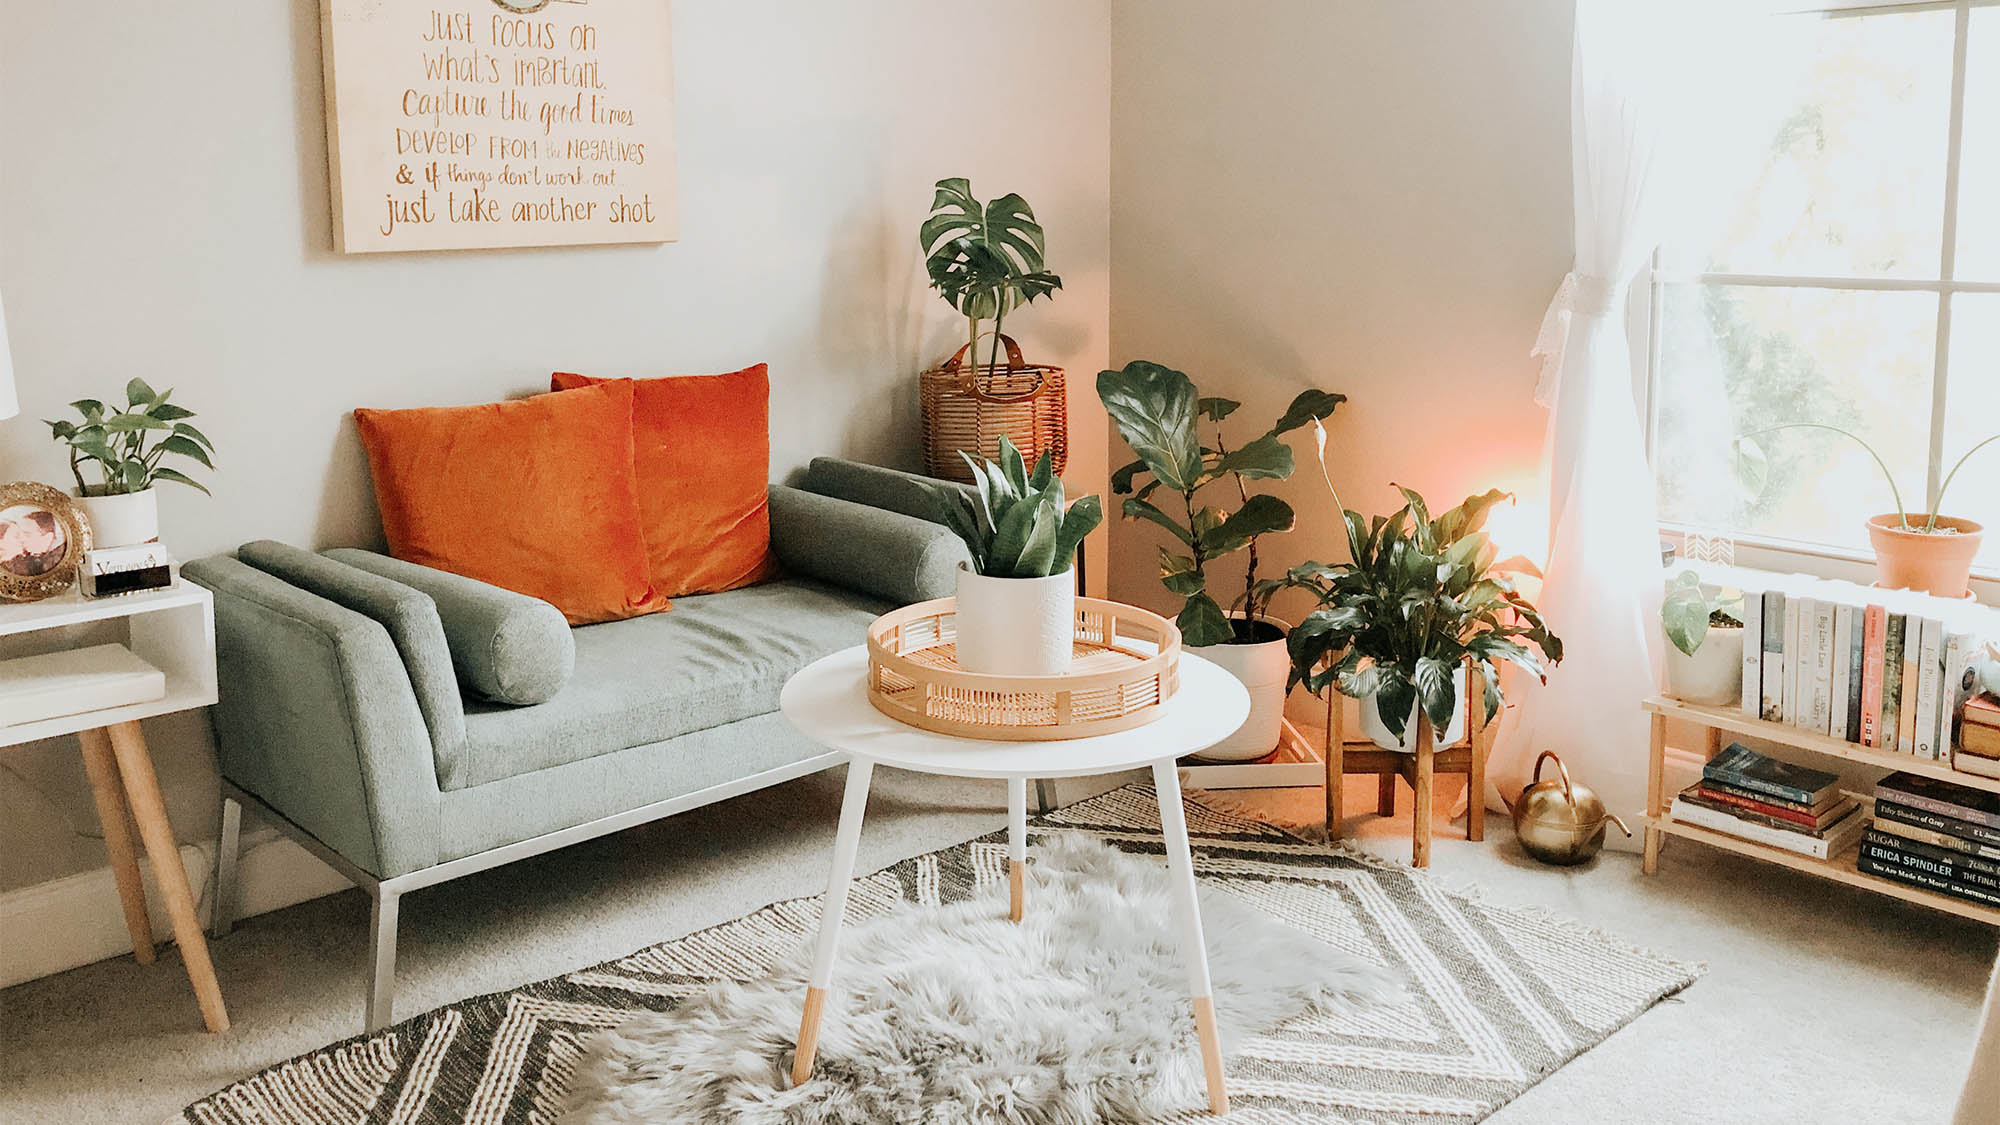 Sun-filled living room decorated with plants, gray couch and orange pillows, white table and small shag rug